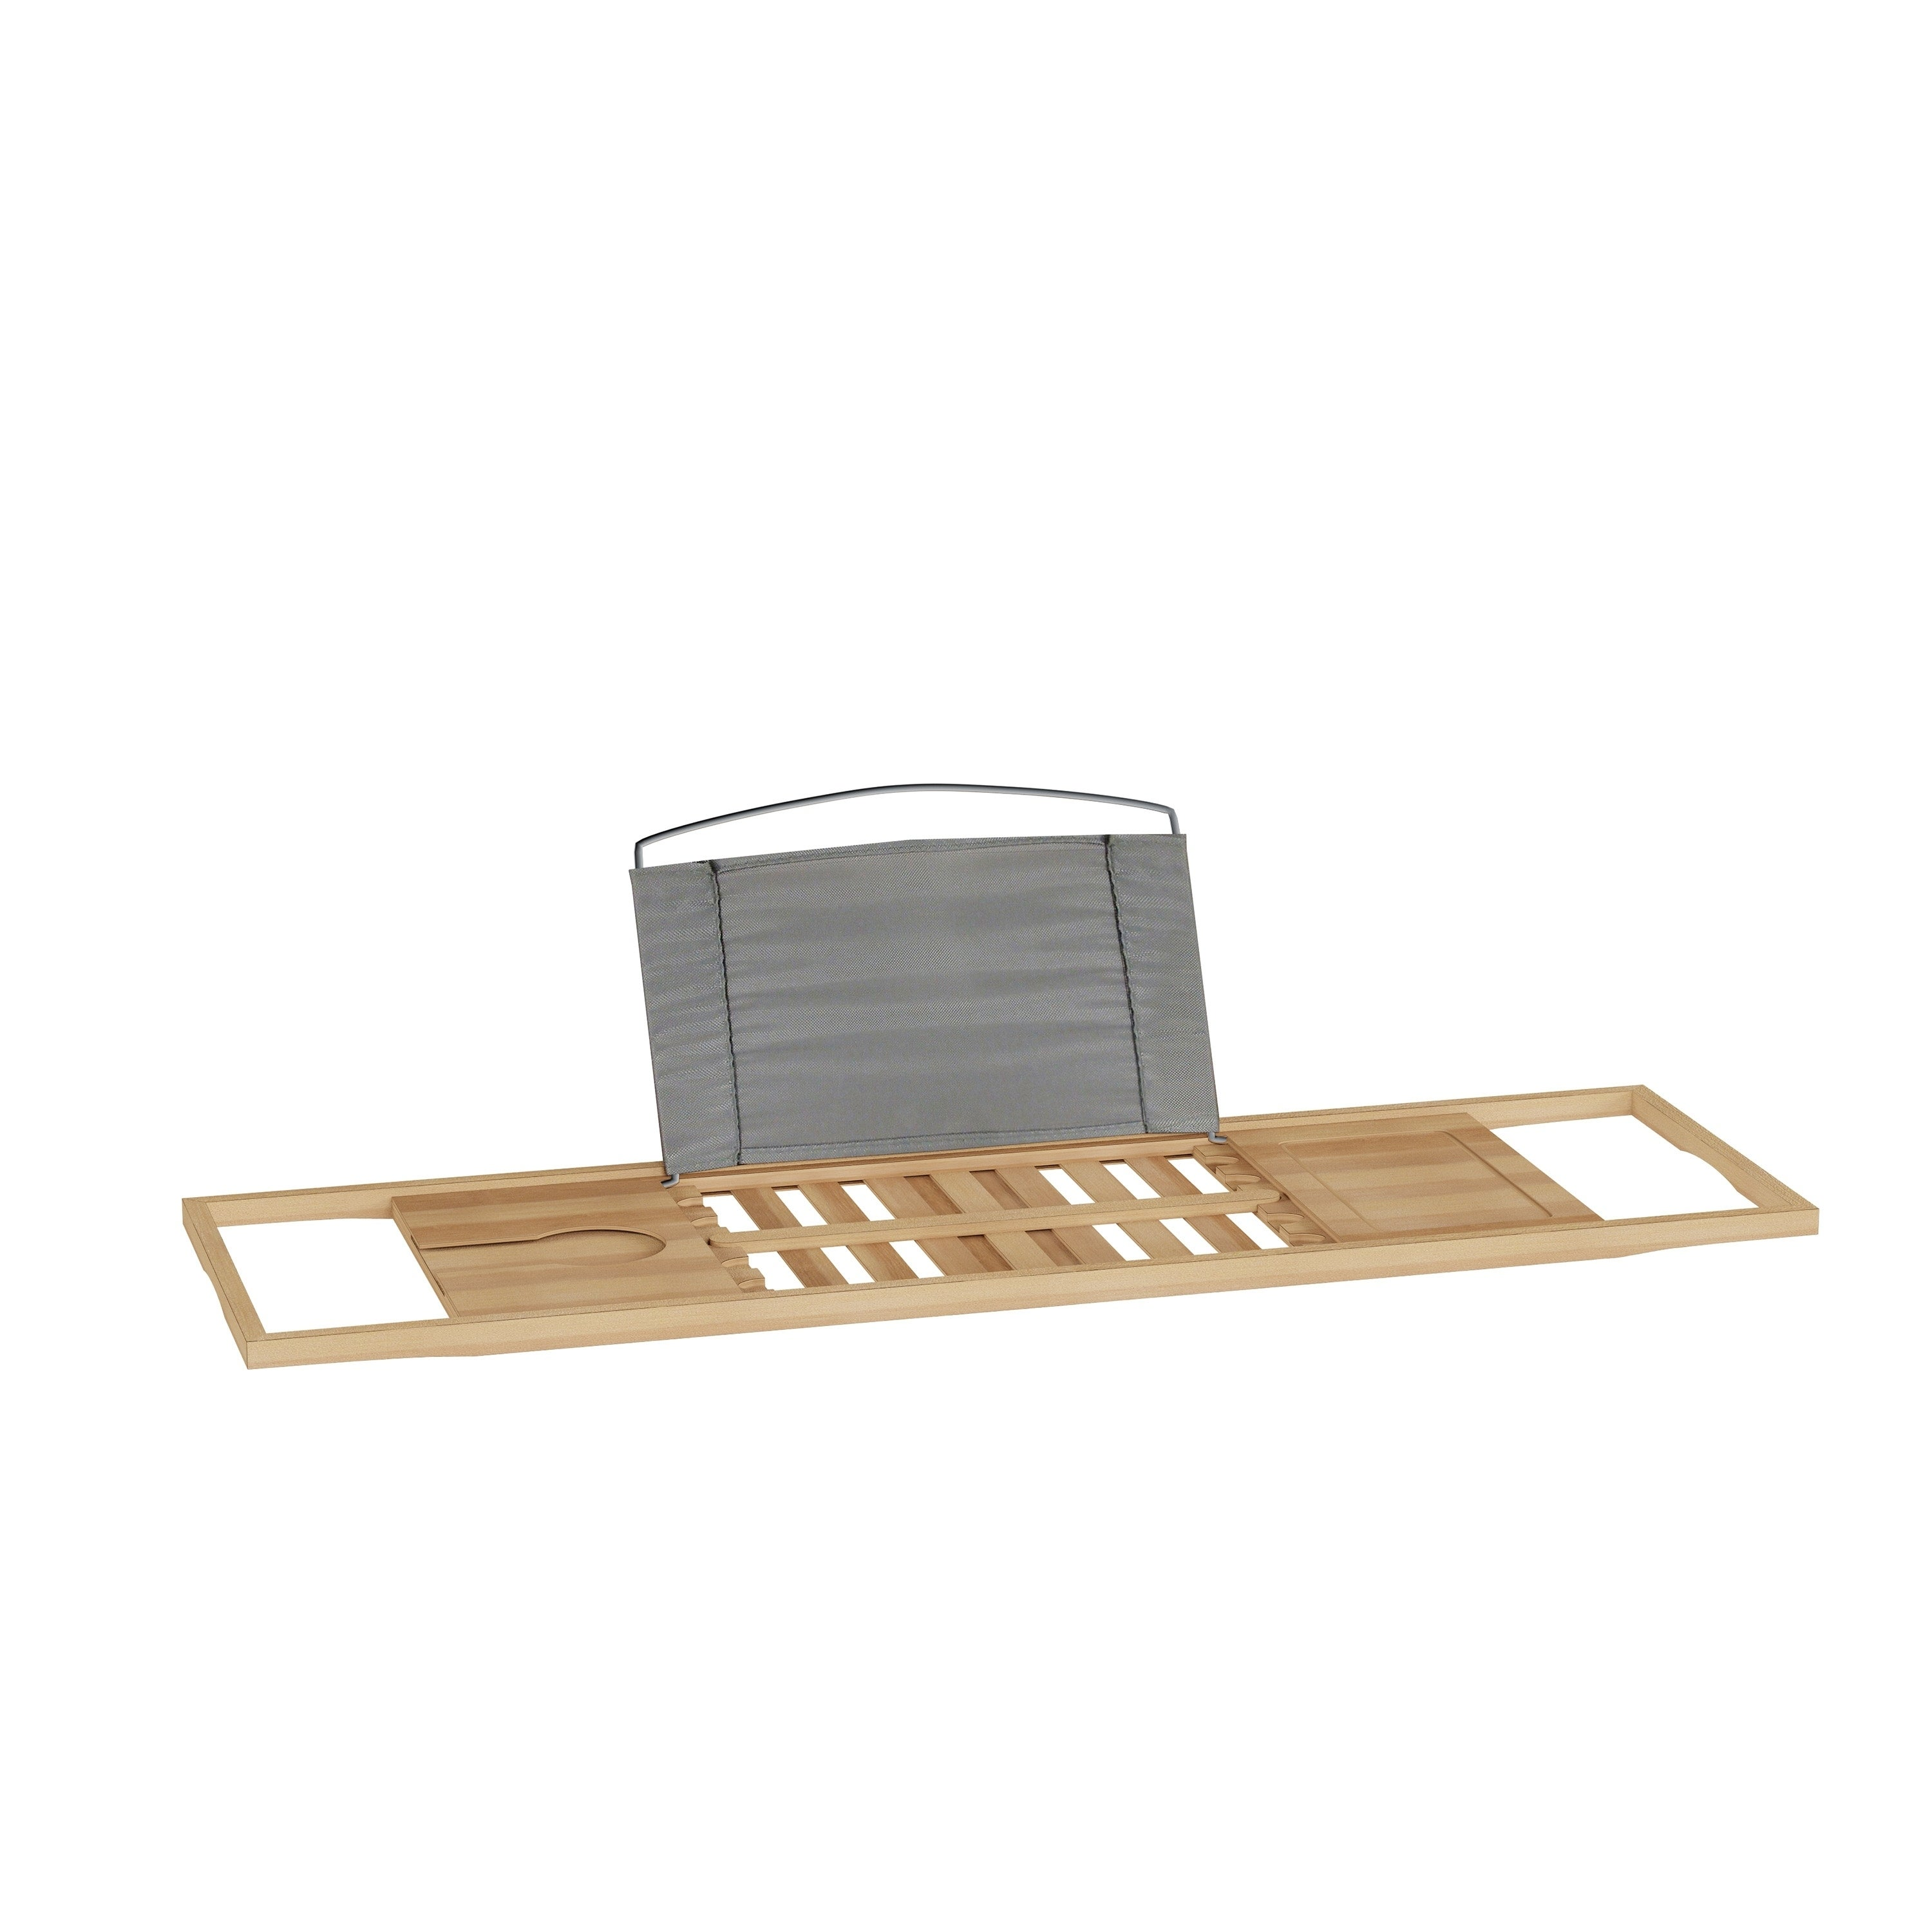 Bamboo Bath Tray | www.topsimages.com